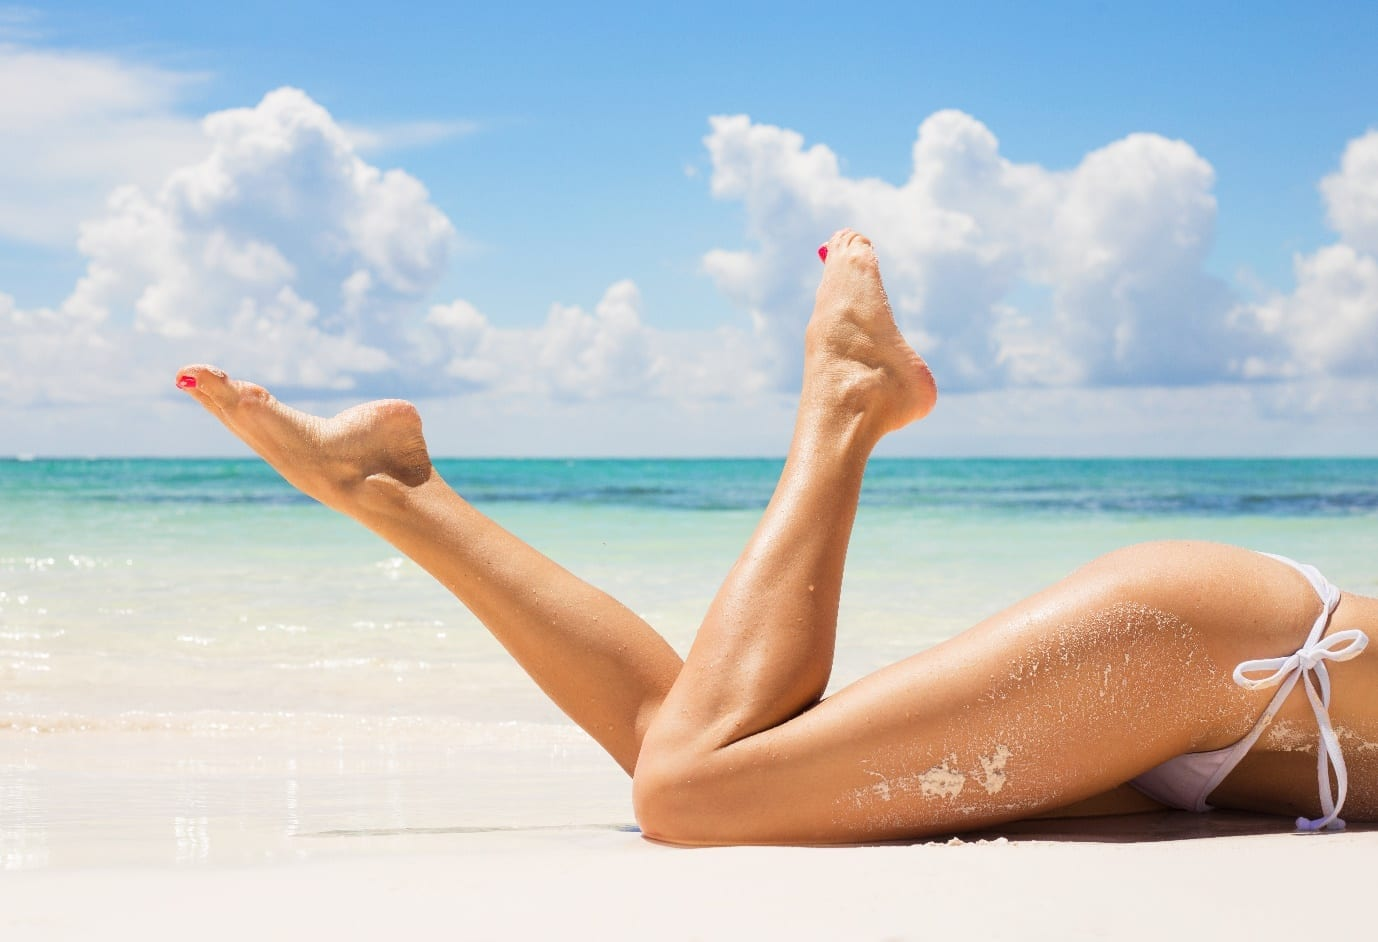 hair removal on woman's legs